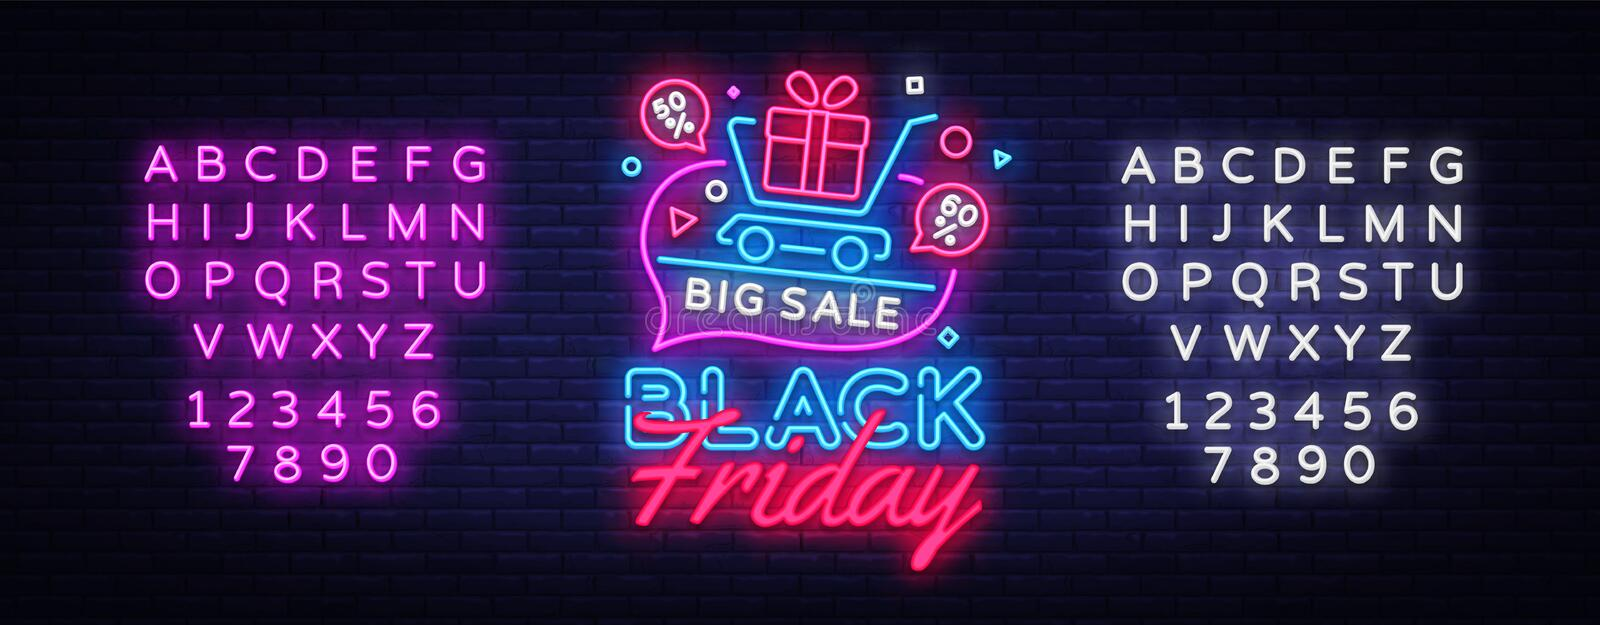 Black Friday Sale concept banner in fashionable neon style, luminous signboard. Nightly advertising of sales rebates of. Black Friday. Vector illustration for vector illustration